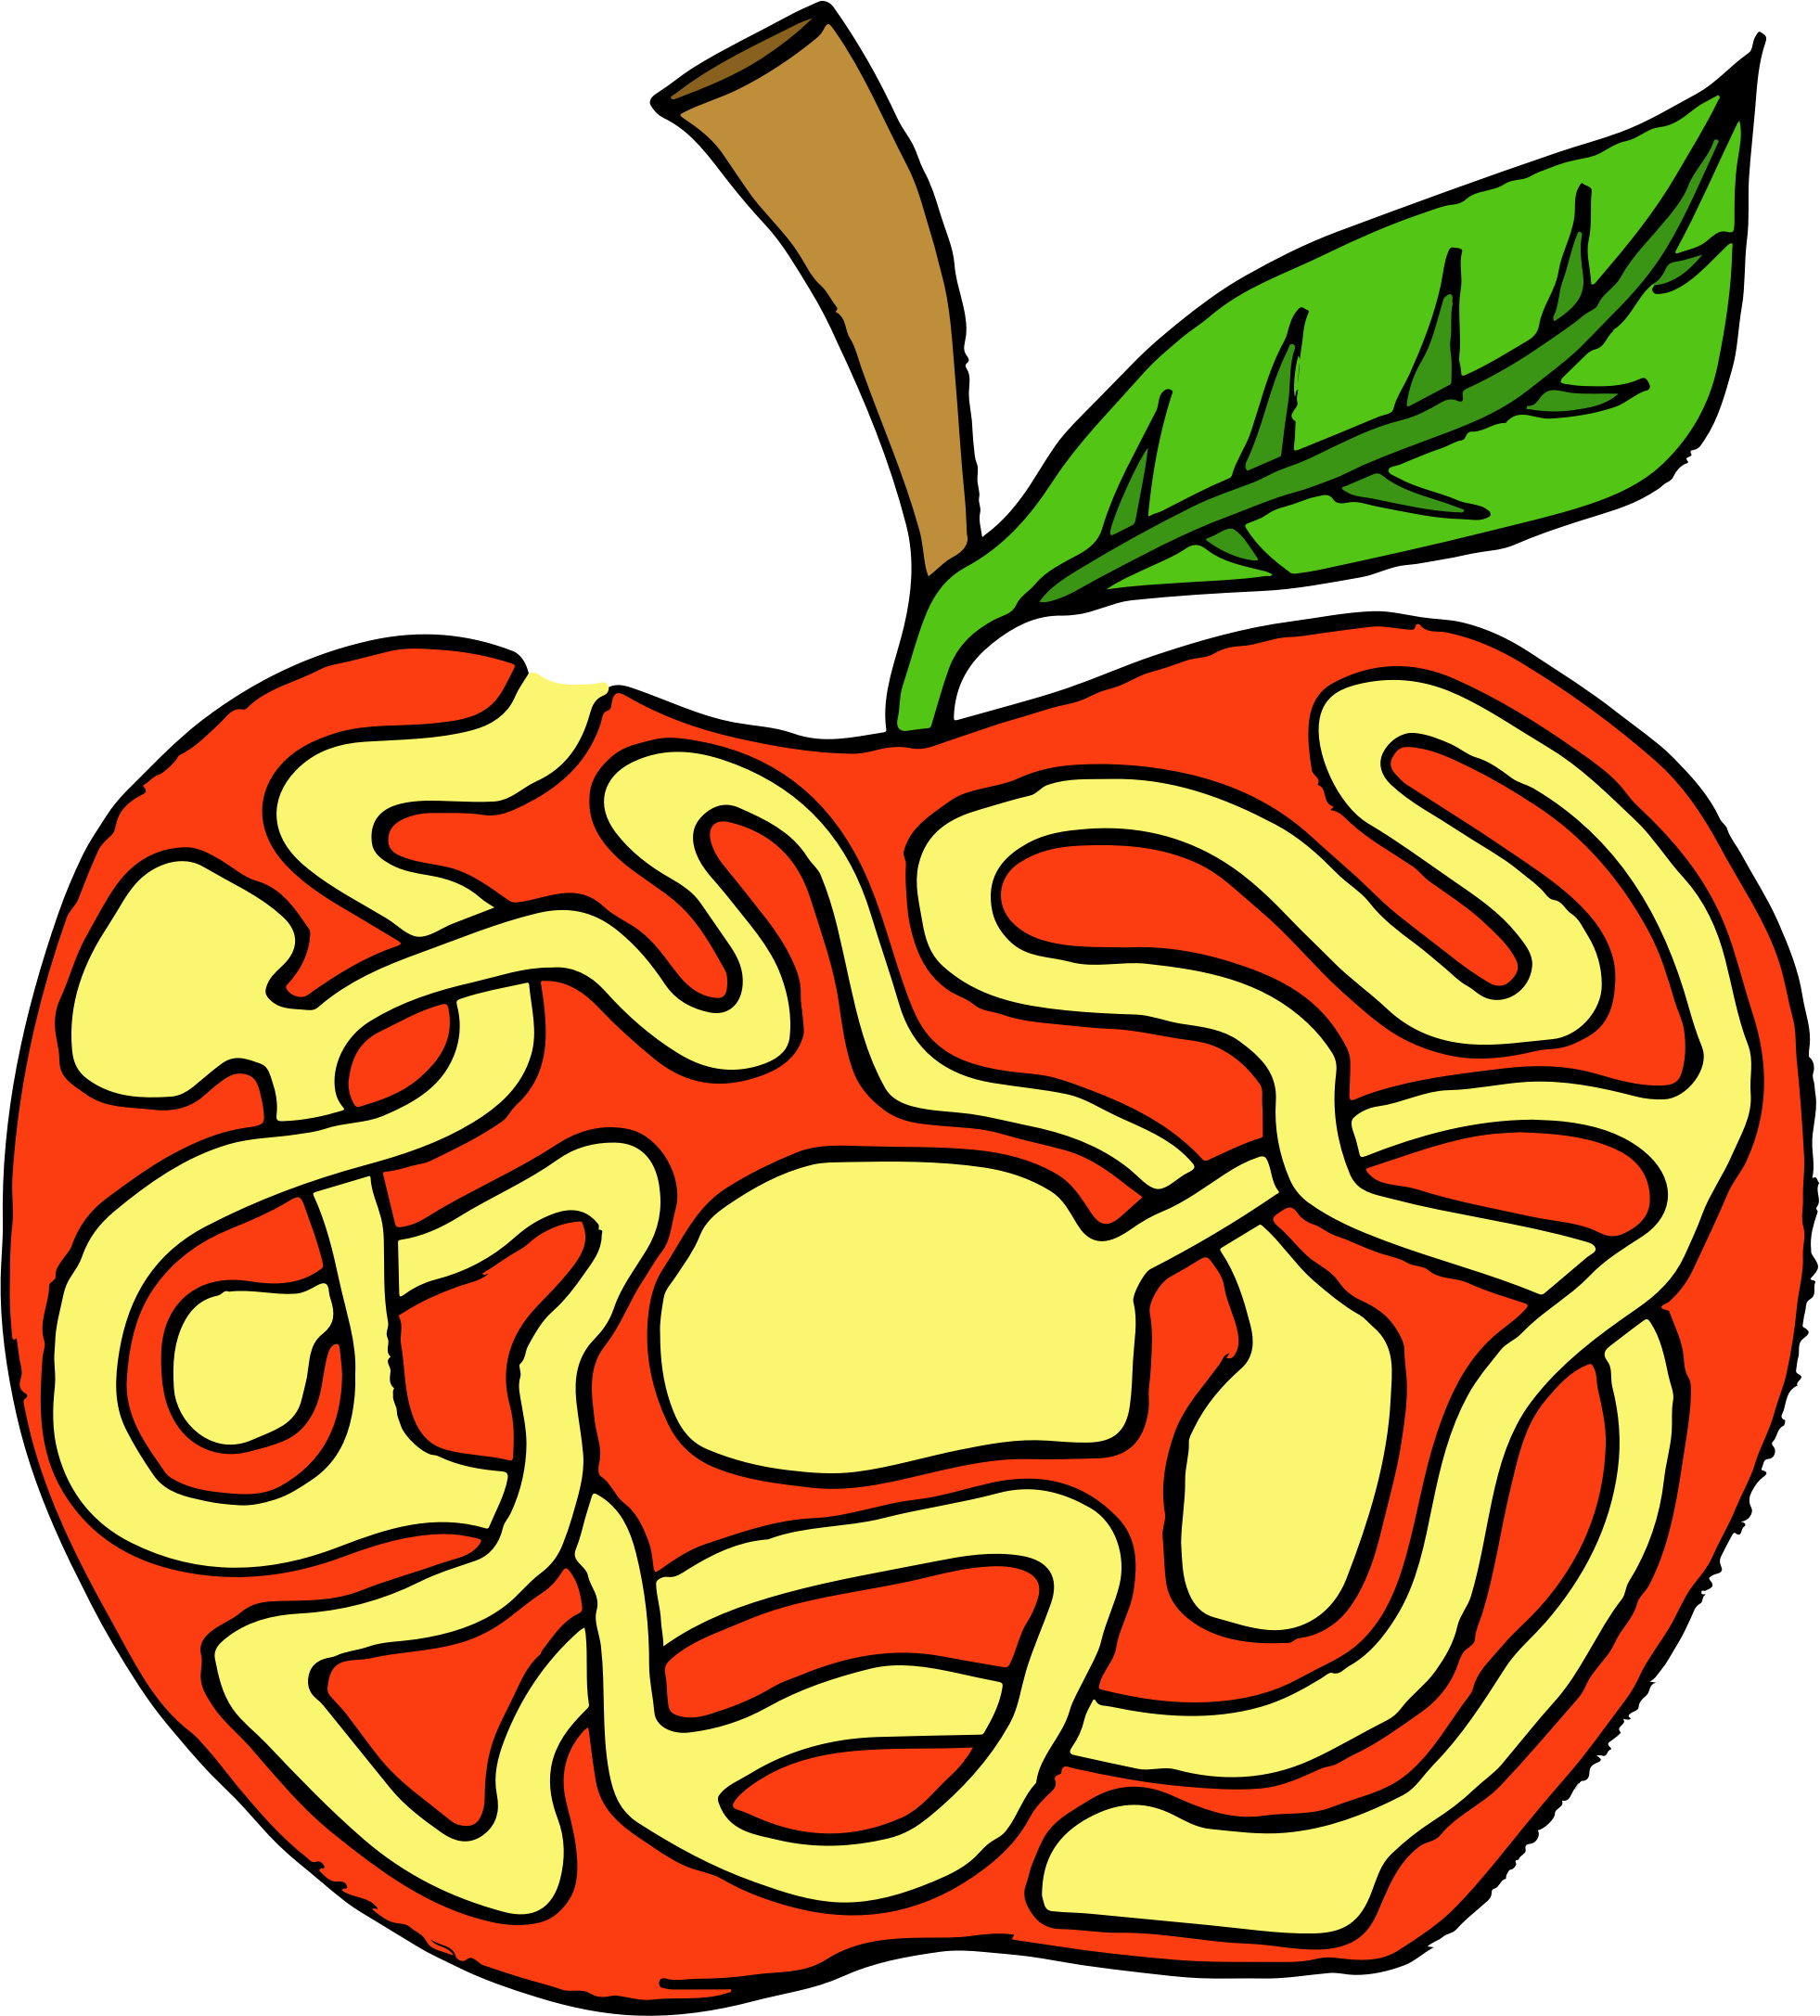 Apple labyrinth big image. Maze clipart pathway free download